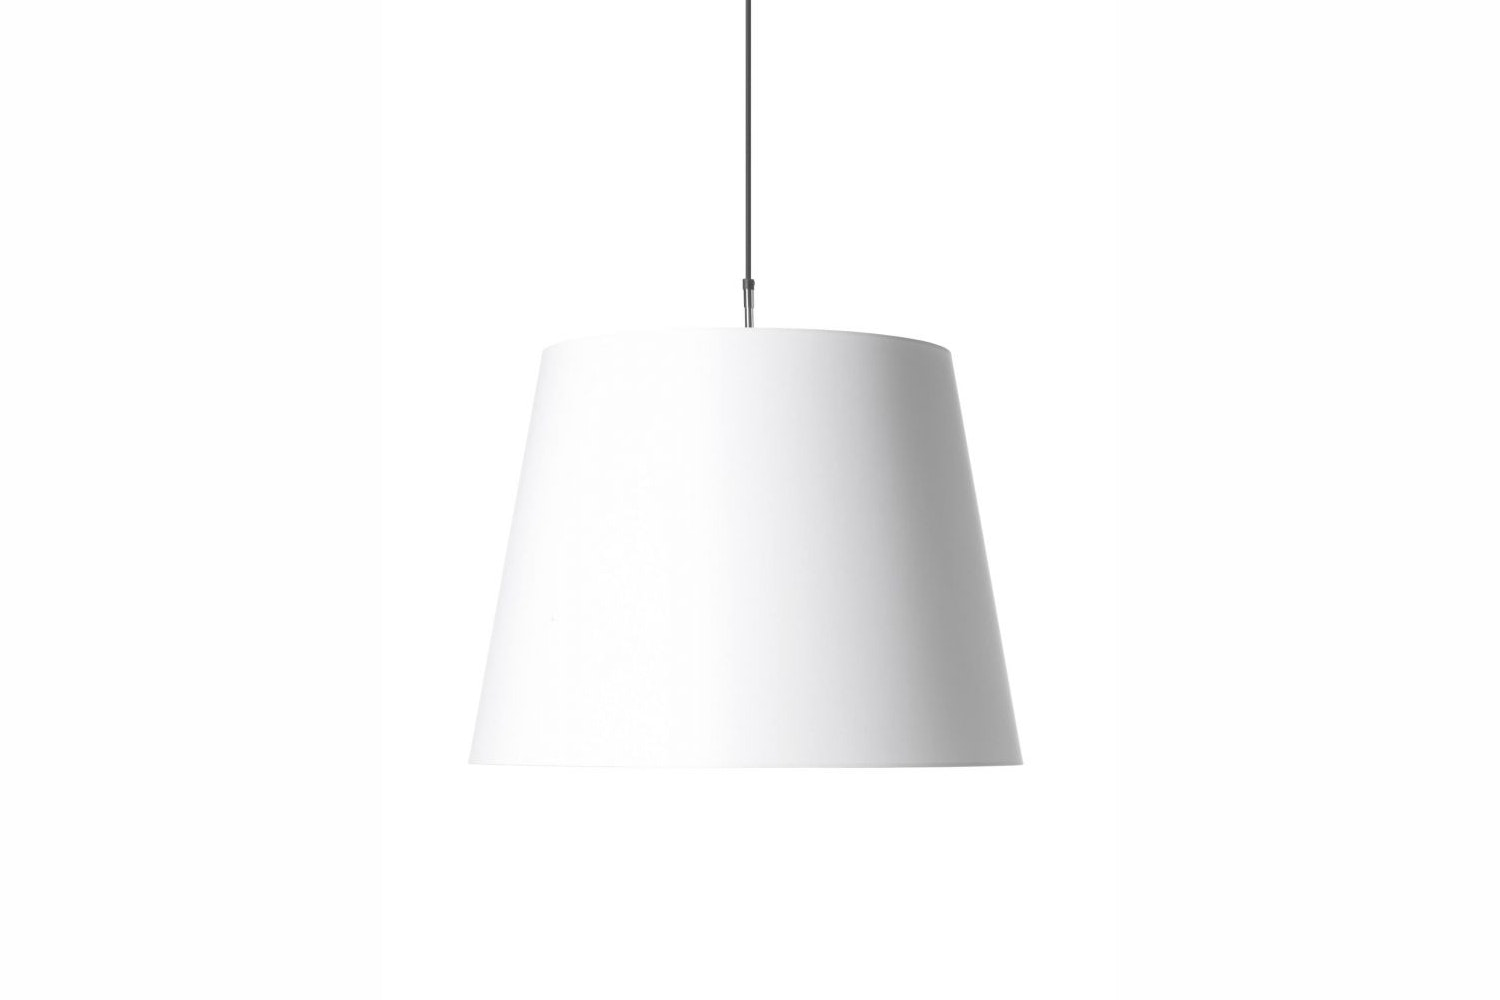 Hang Suspension Lamp by Marcel Wanders for Moooi